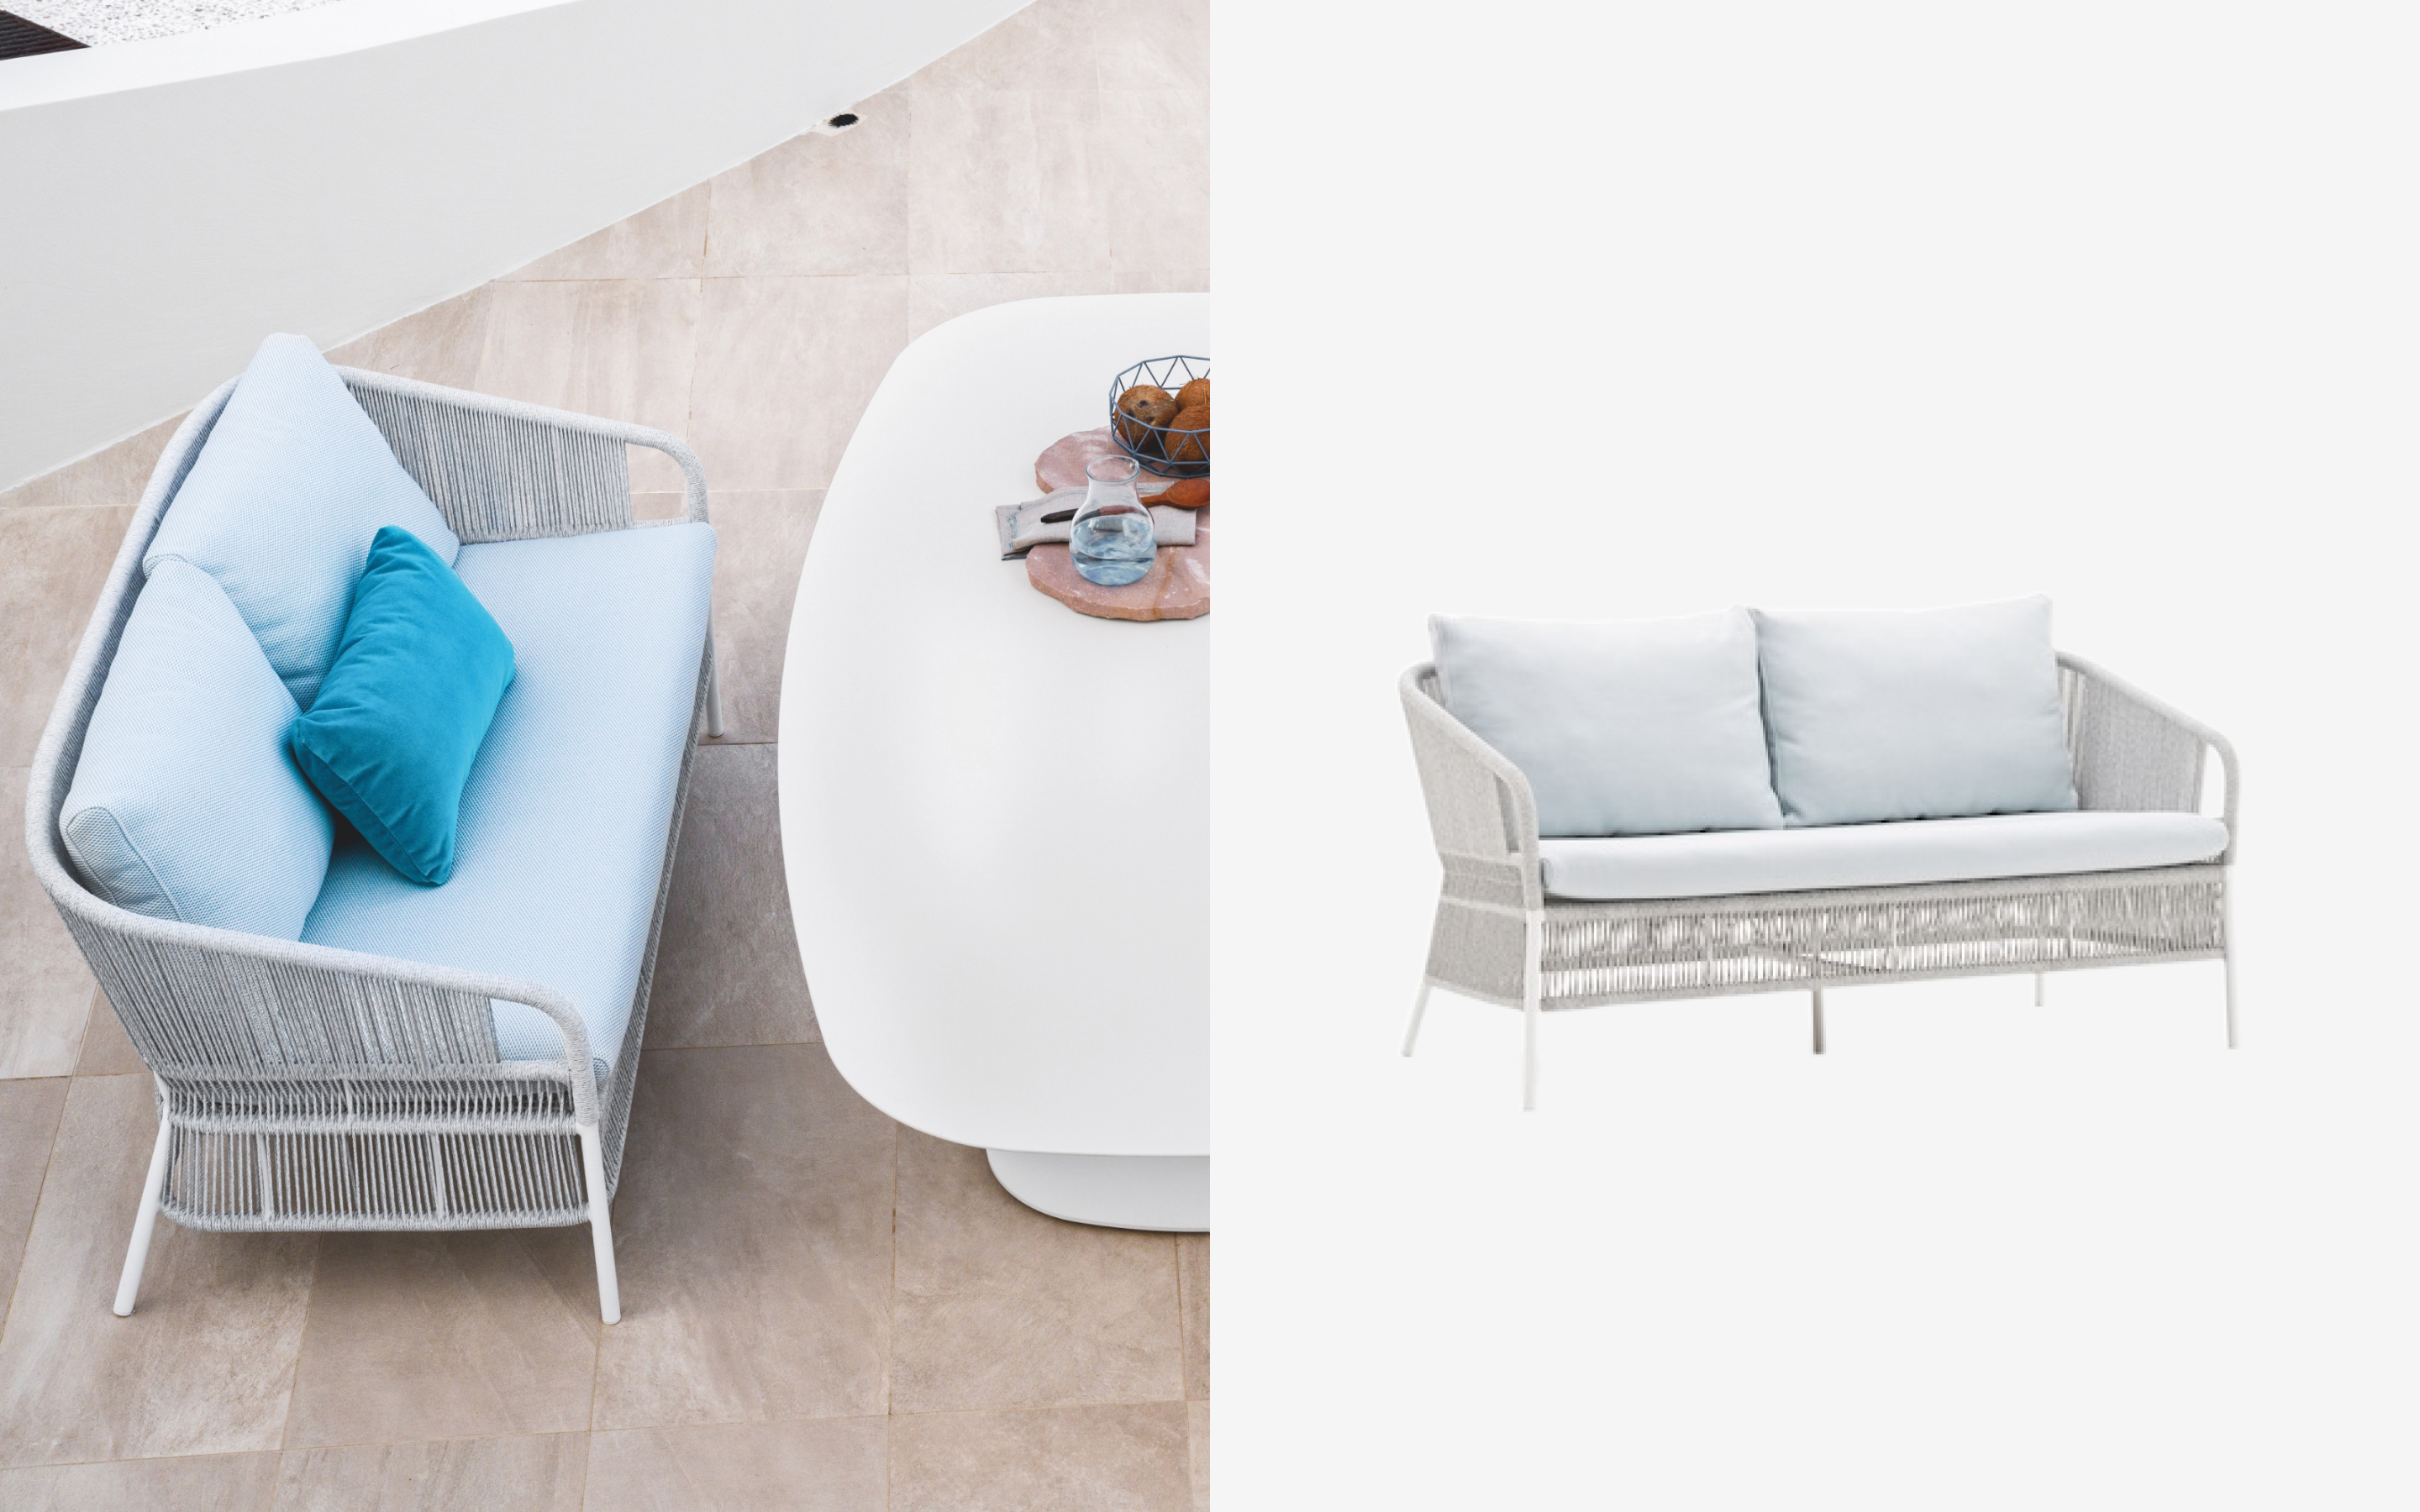 Cricket sofa with light blue seat cushion and backrest